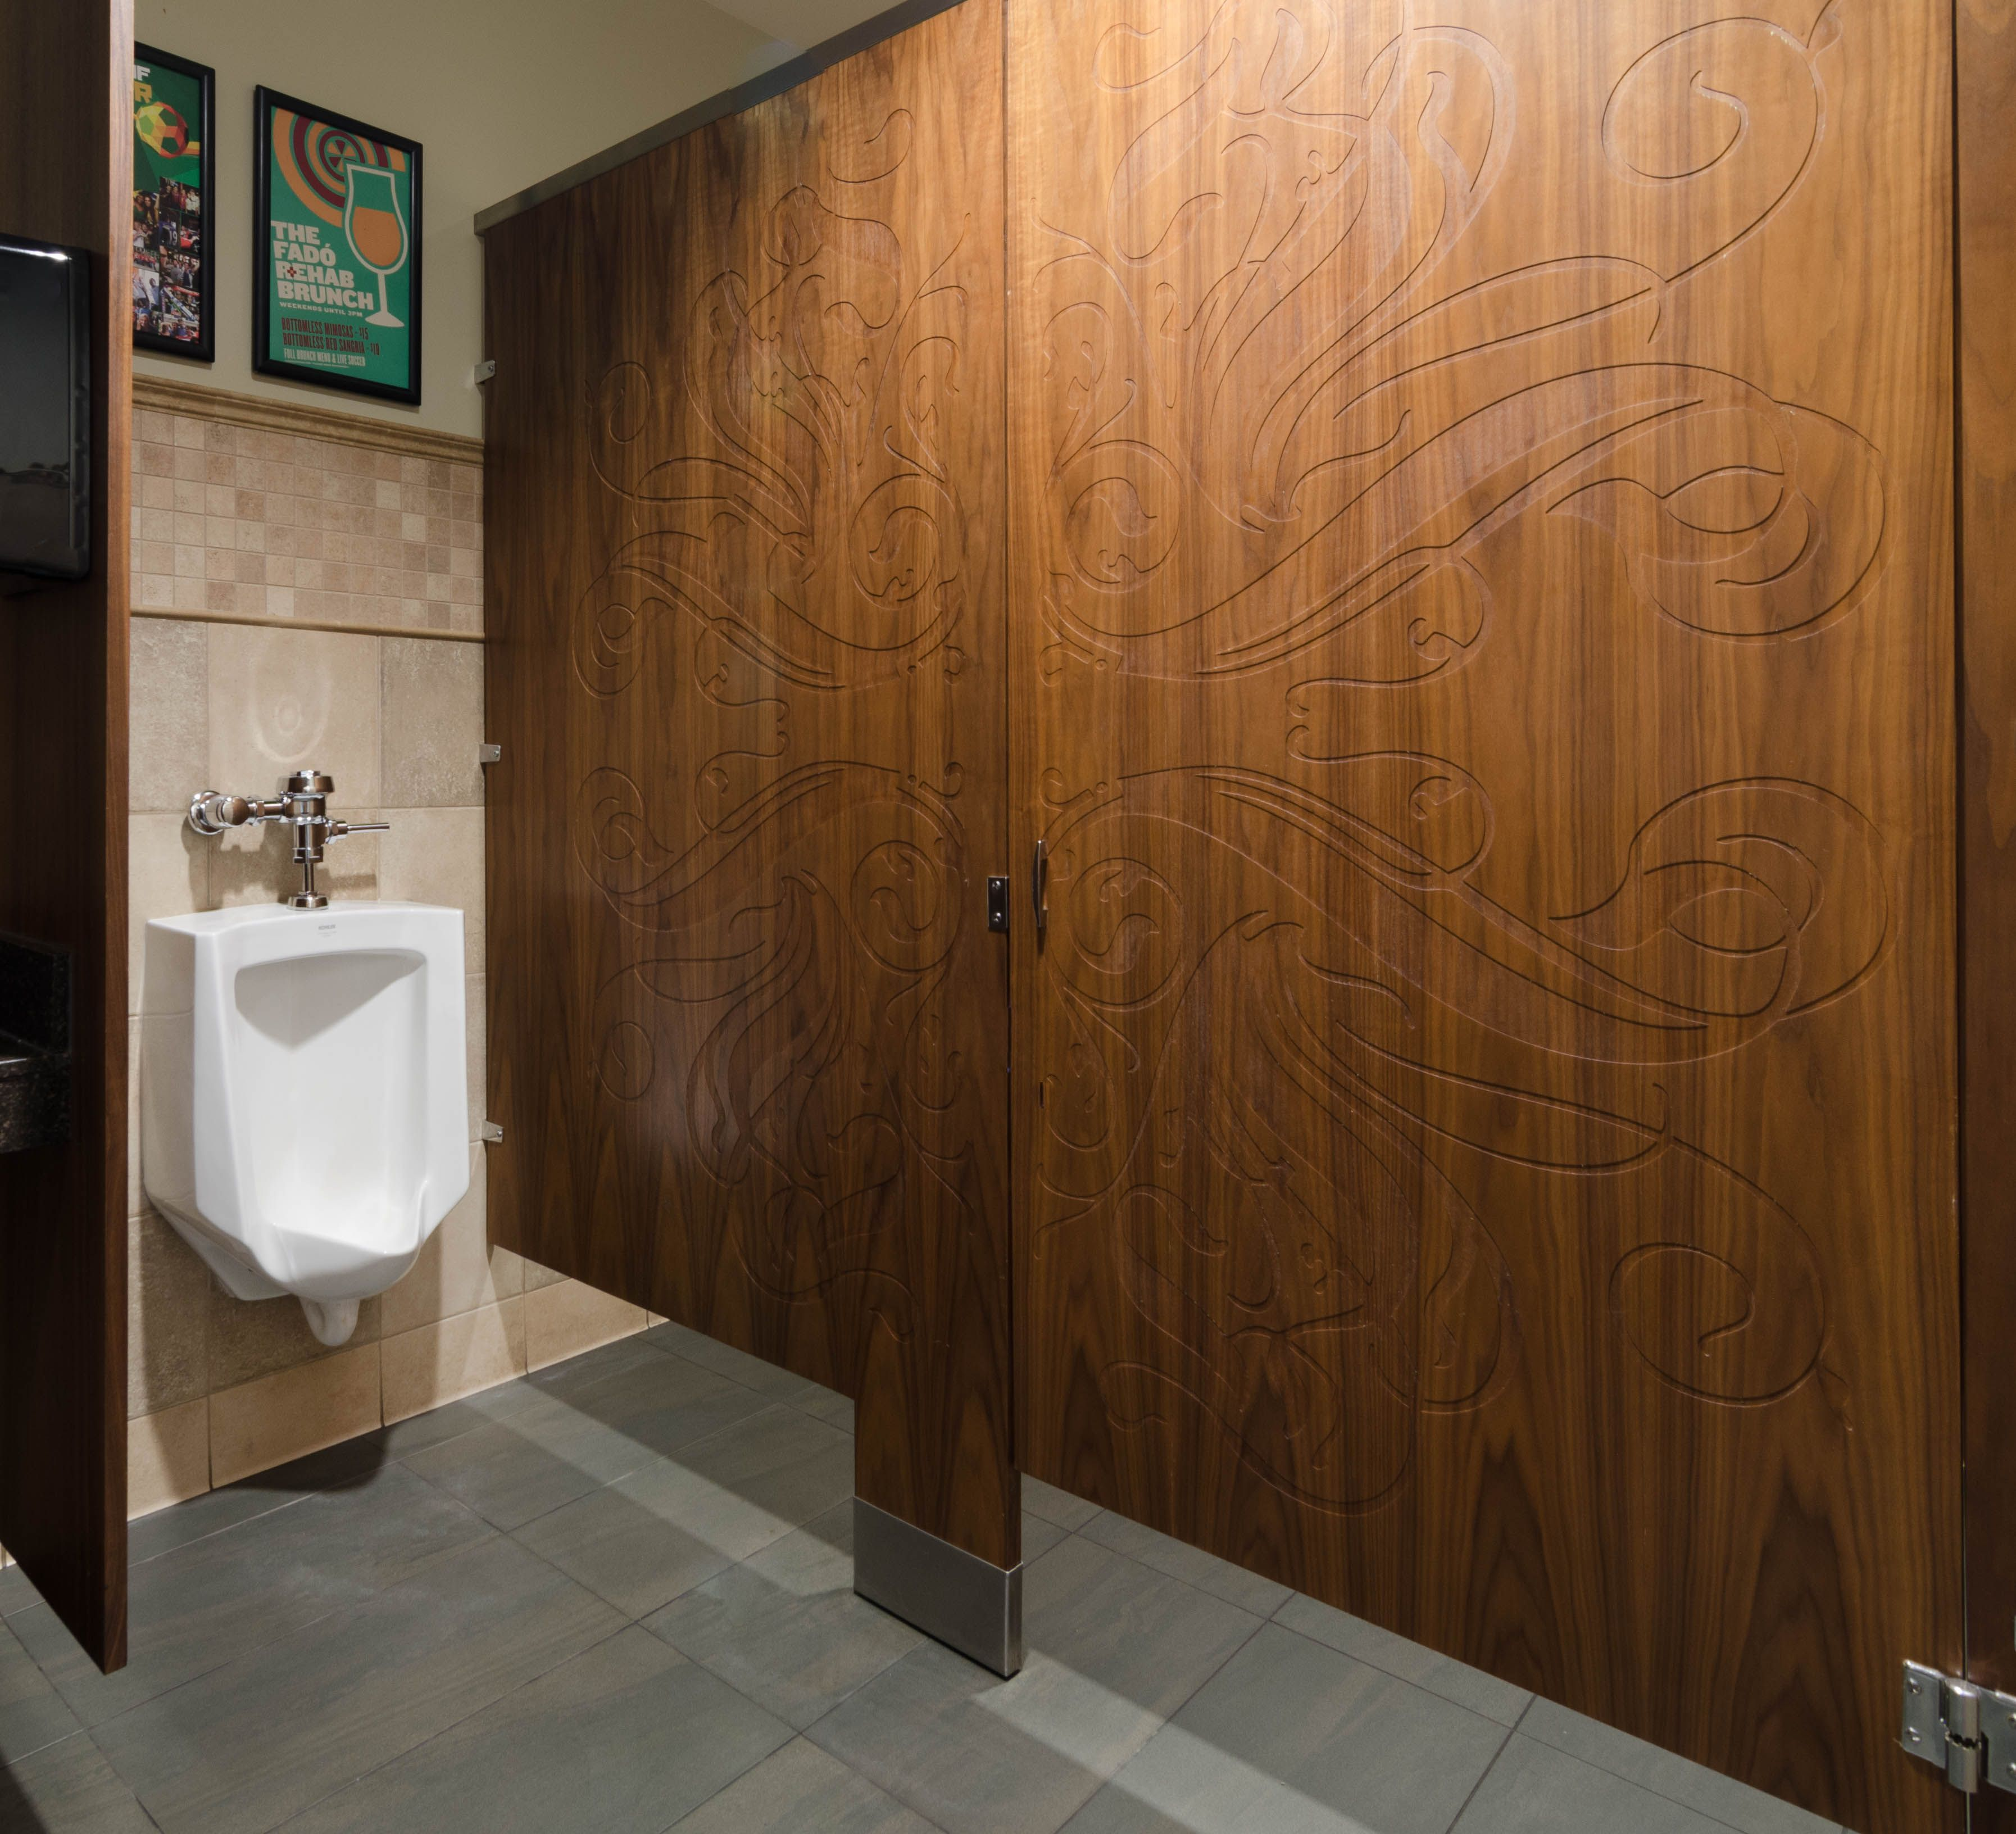 Ironwood Manufacturing Wood Veneer Toilet Partition And Engraved Bathroom  Doors. Beautiful, Upscale Public Restroom Stalls.